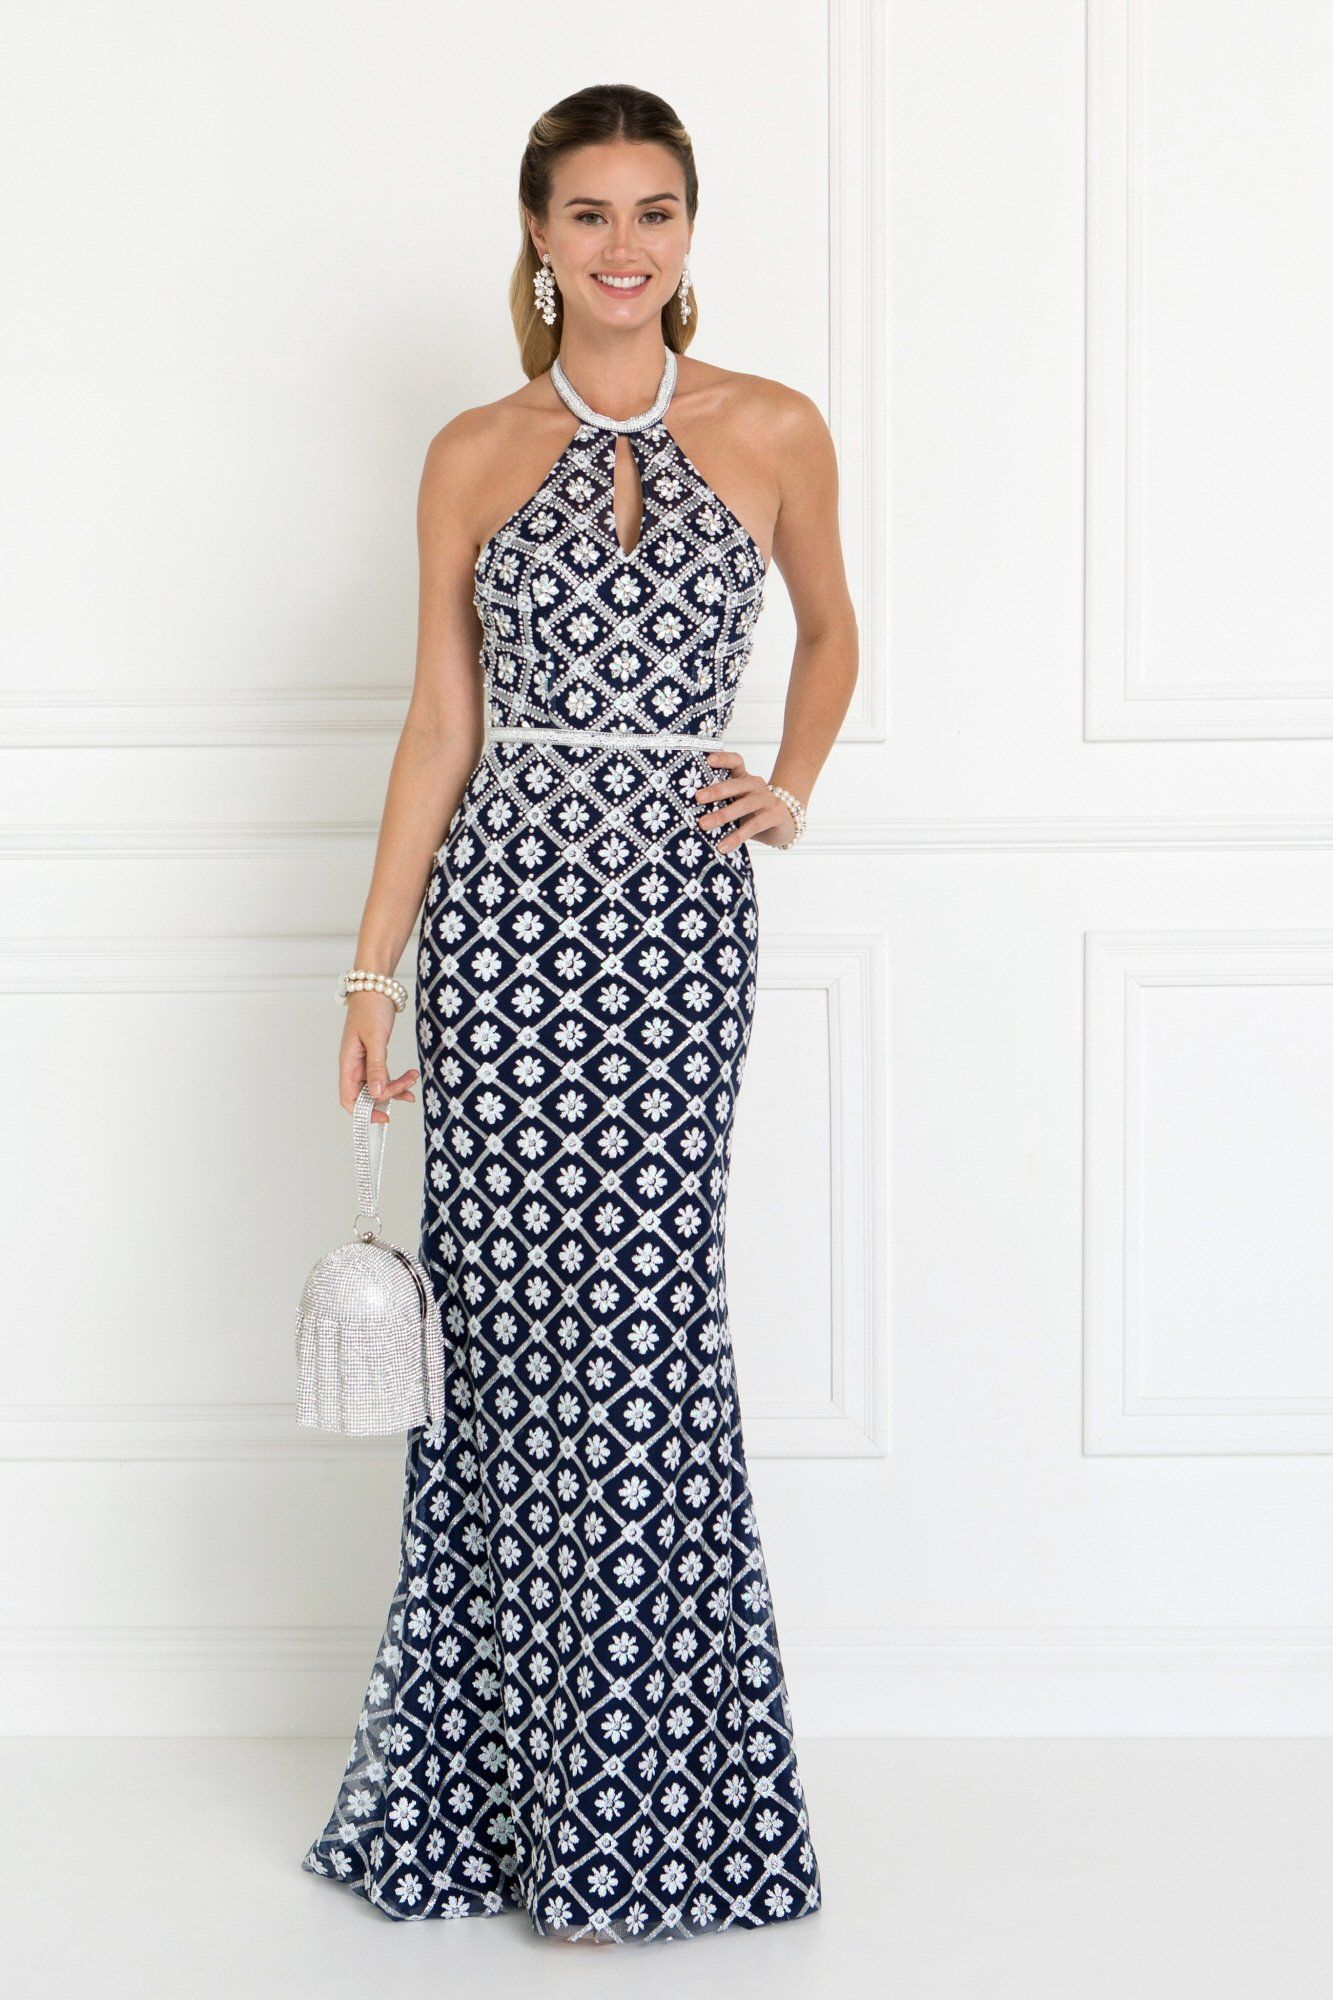 caf1ab44756 Look fabulous in this long evening dress with halter neck. An elegant gown  great for a gala or formal event. This stunning dress is adorn with  sparkling ...